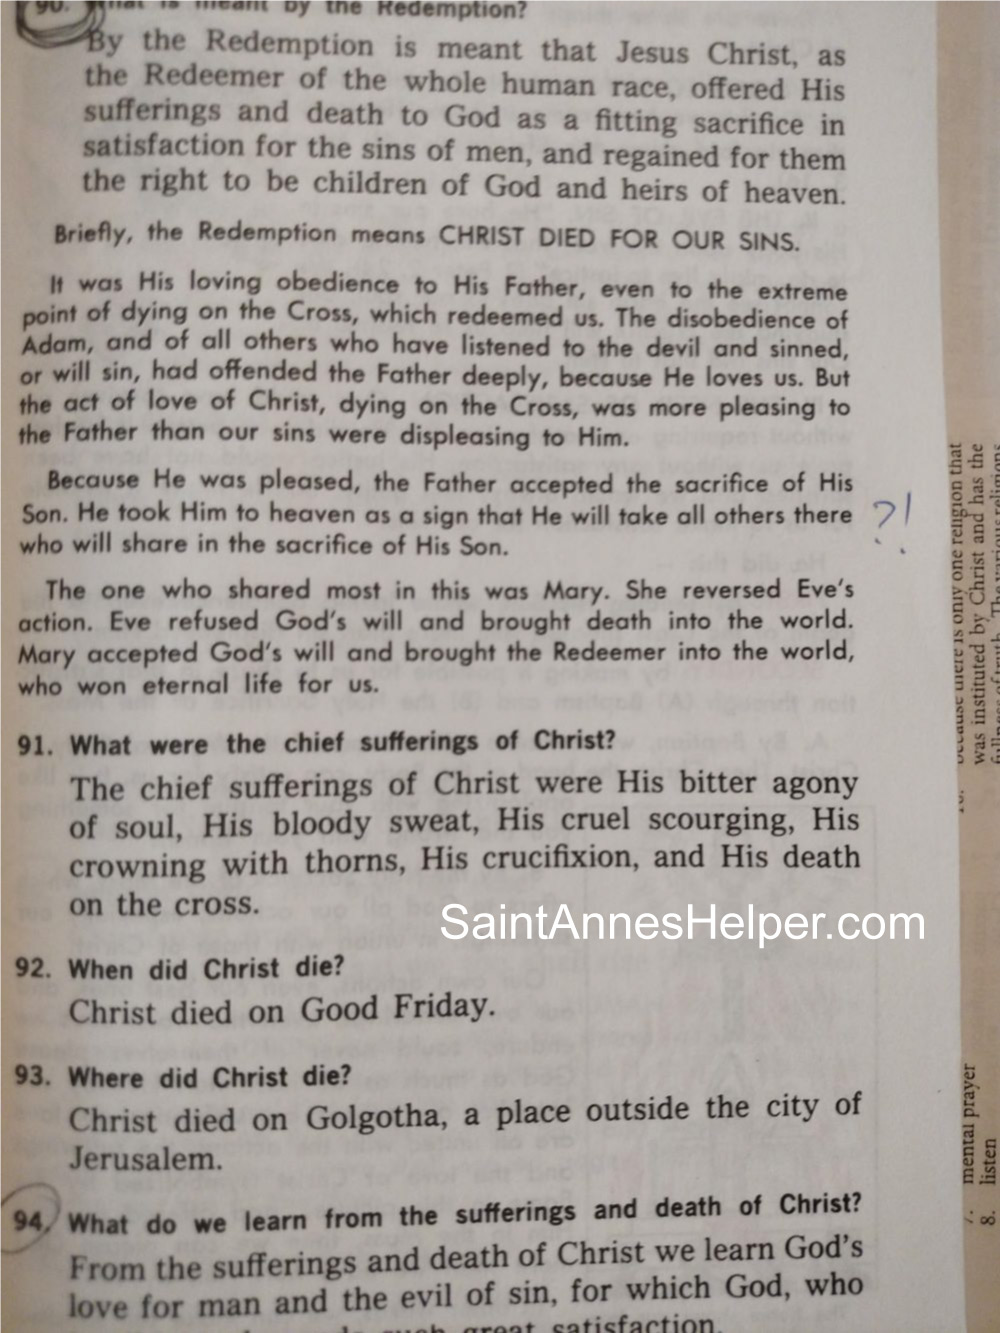 Catholic catechism for children: NSJBC No. 2 combines the Resurrection and Ascension of Jesus.